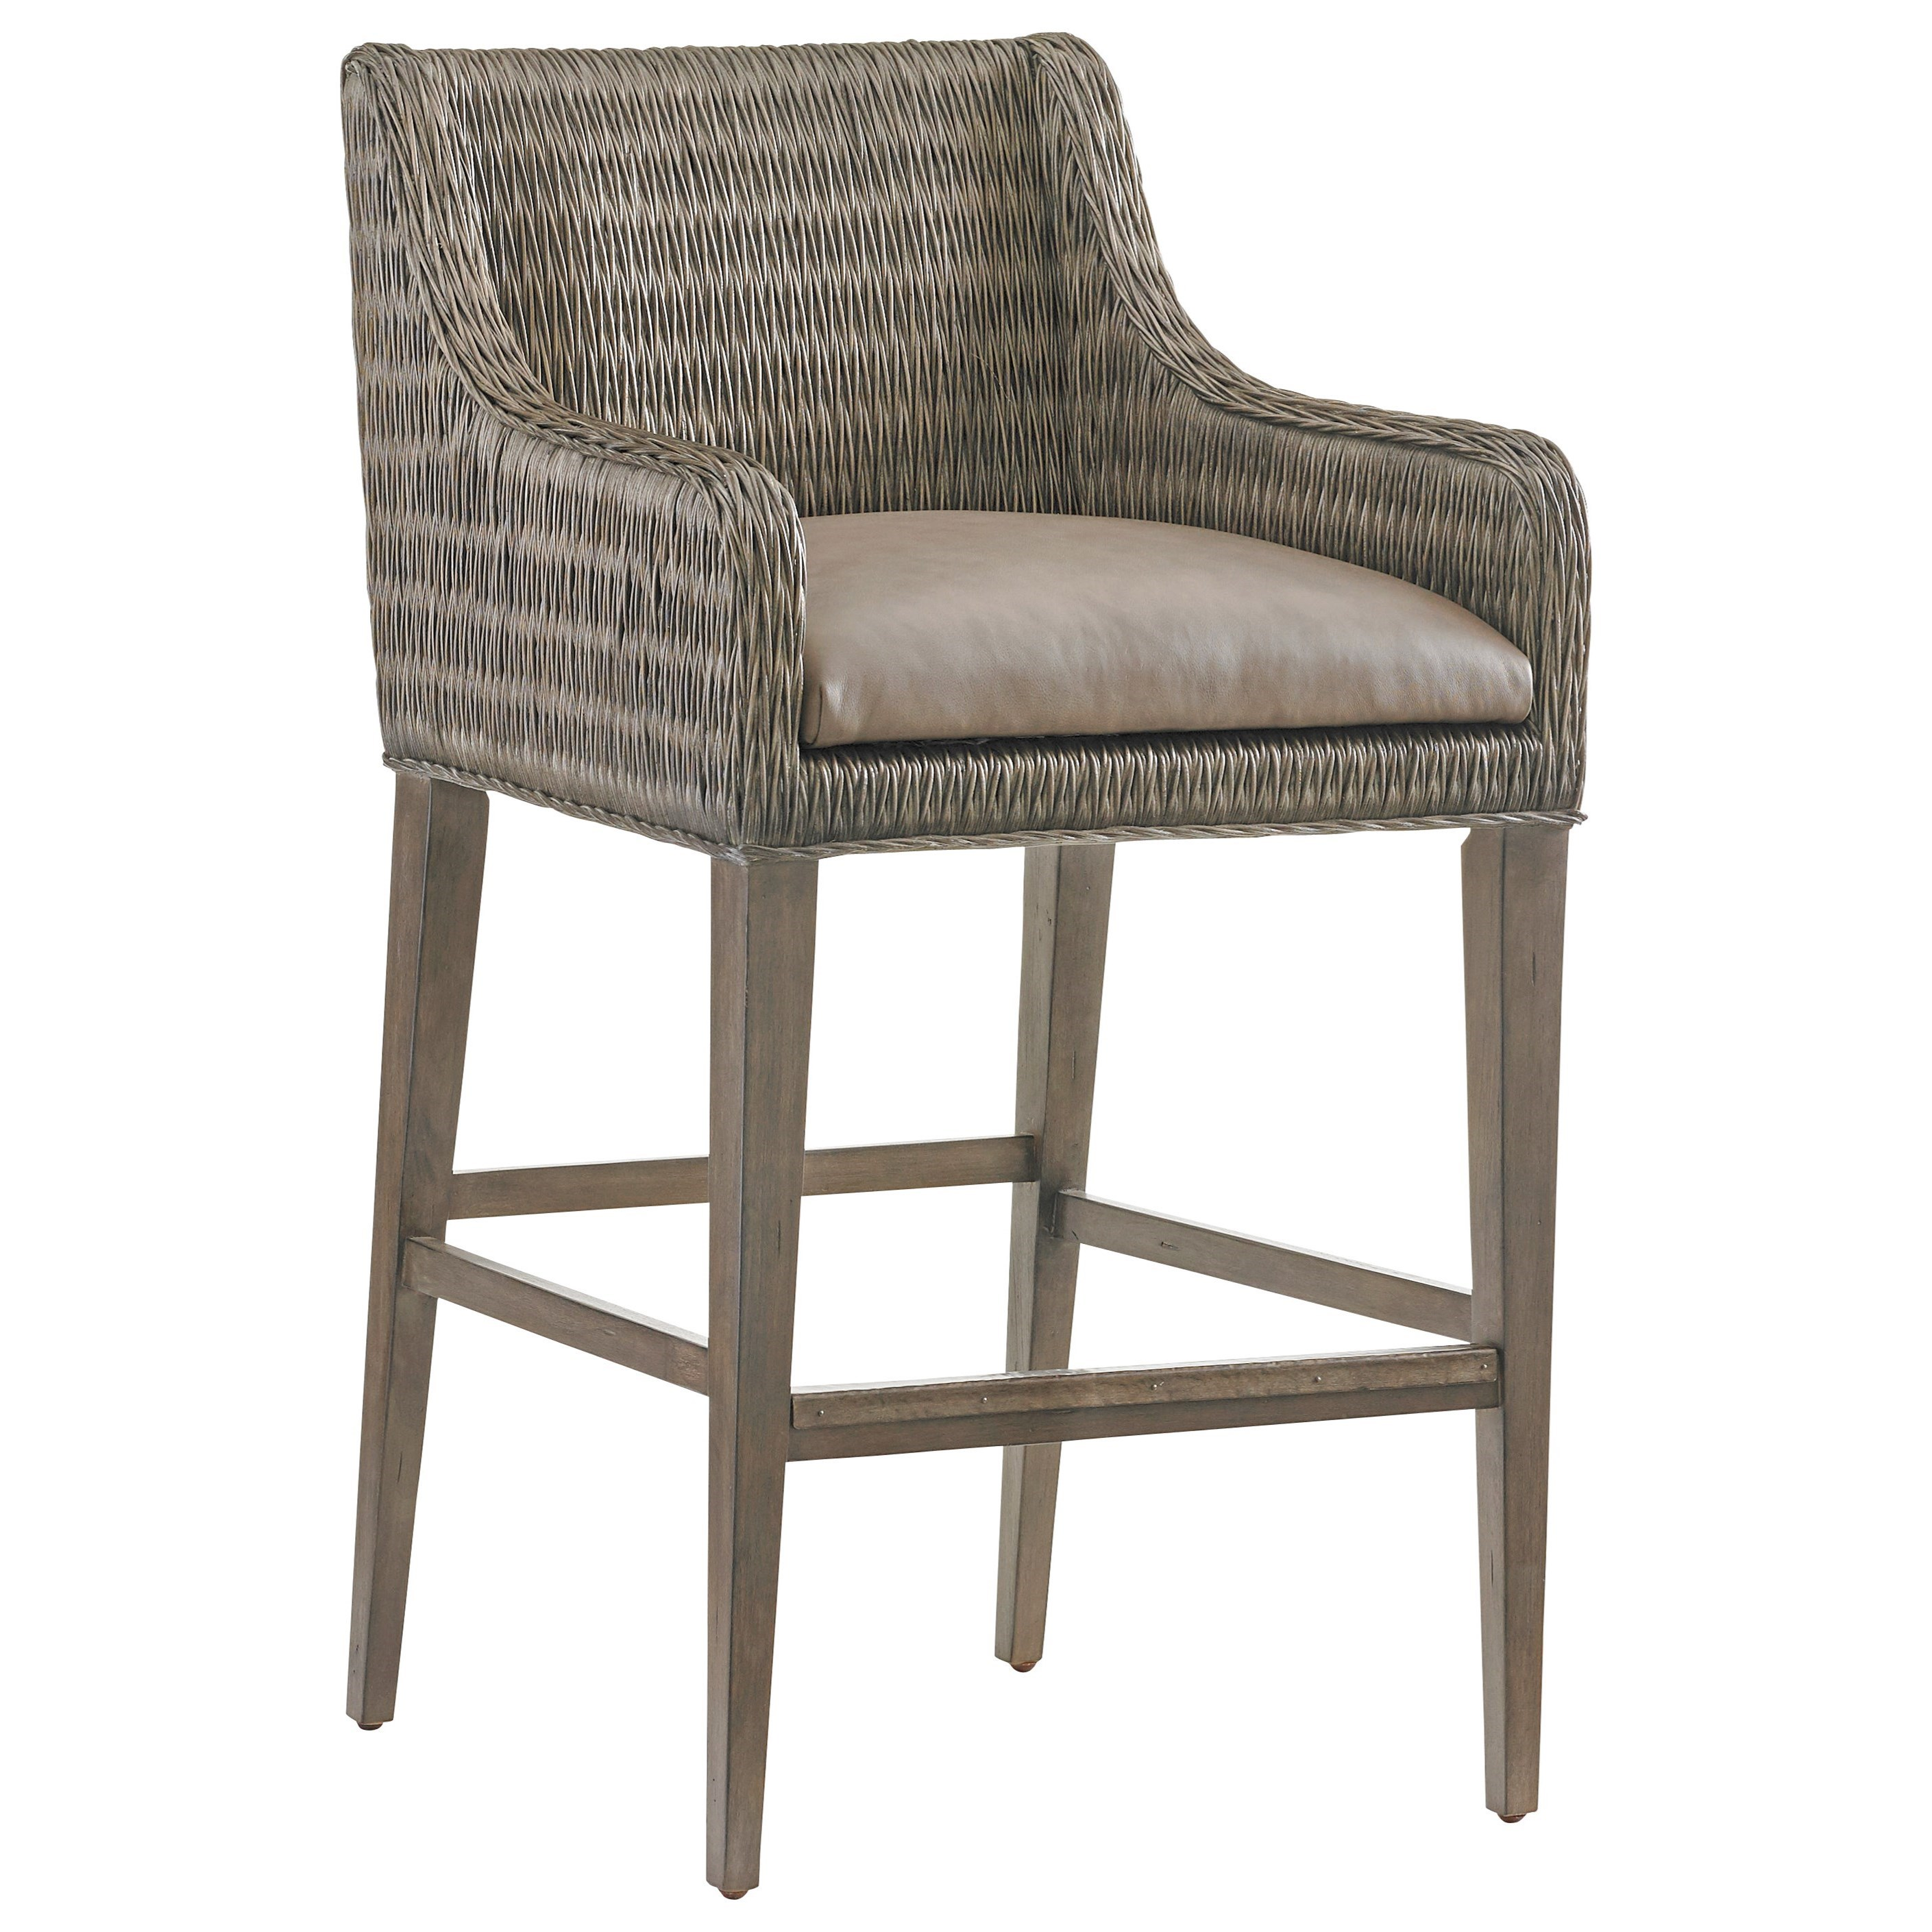 Cypress Point Turner Woven Bar Stool by Tommy Bahama Home at Baer's Furniture